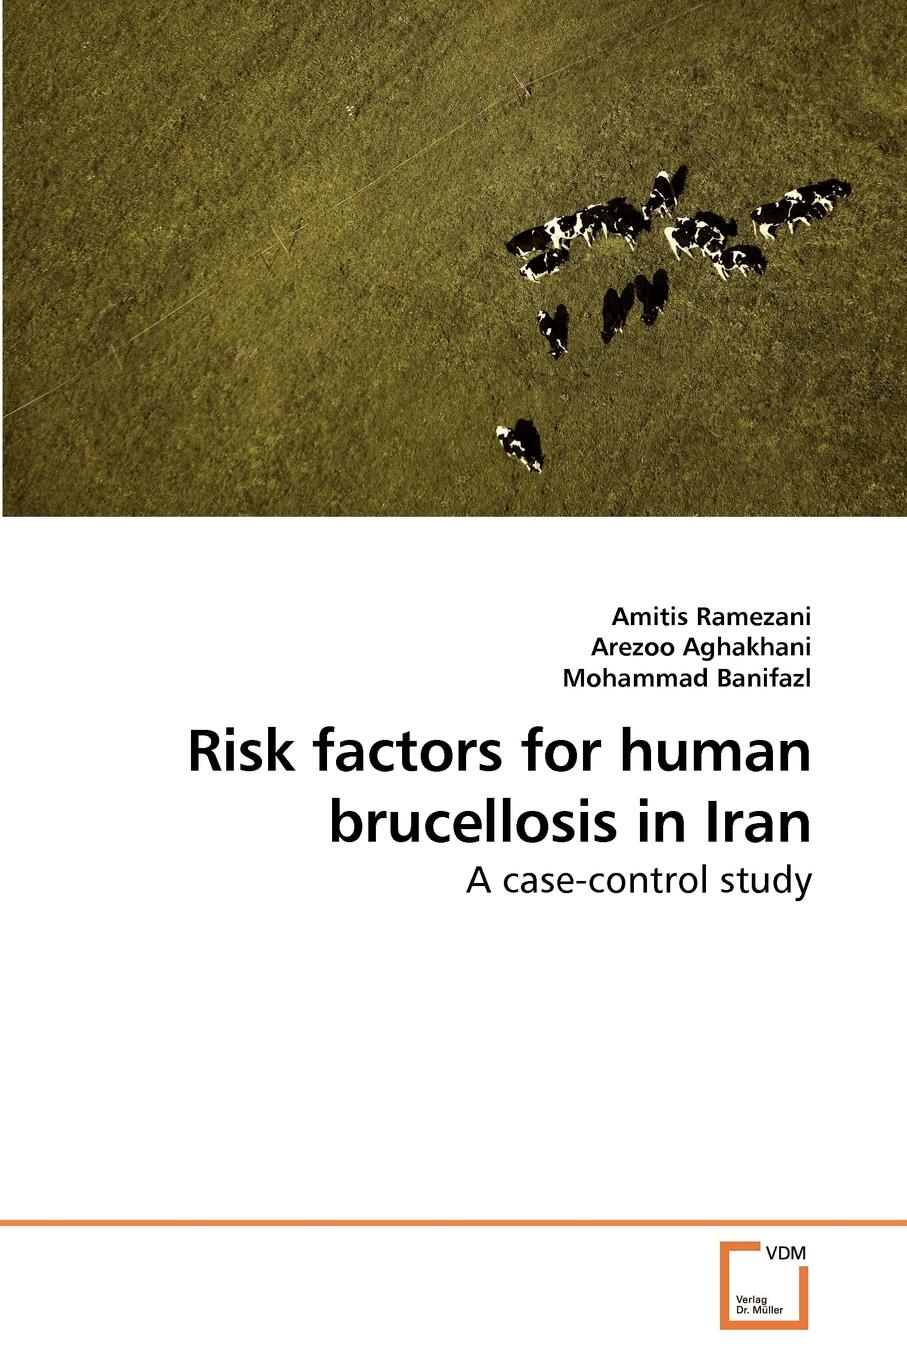 Amitis Ramezani Risk factors for human brucellosis in Iran niels behrendt matrix proteases in health and disease